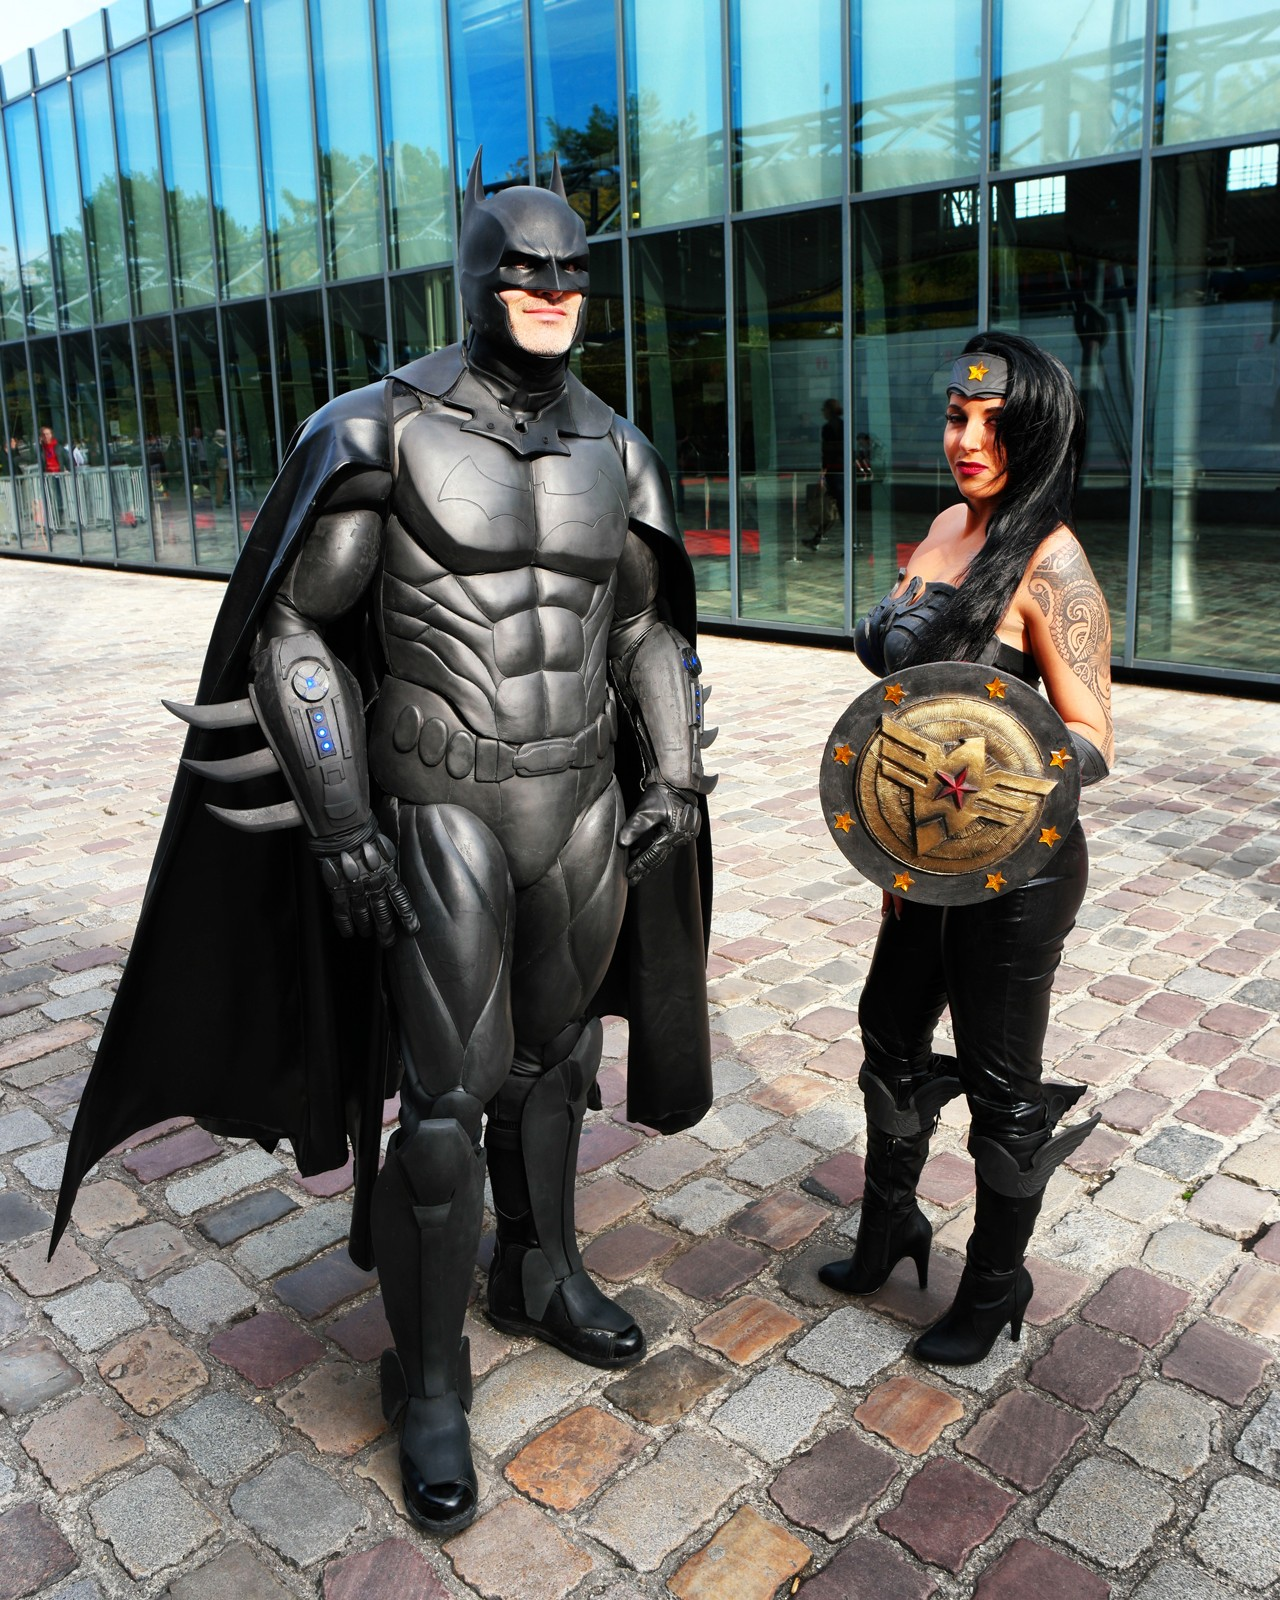 Batman super classe et une lady Comic Con Paris cosplay festival 2015 Grande Halle de la Villette photo united states of paris blog